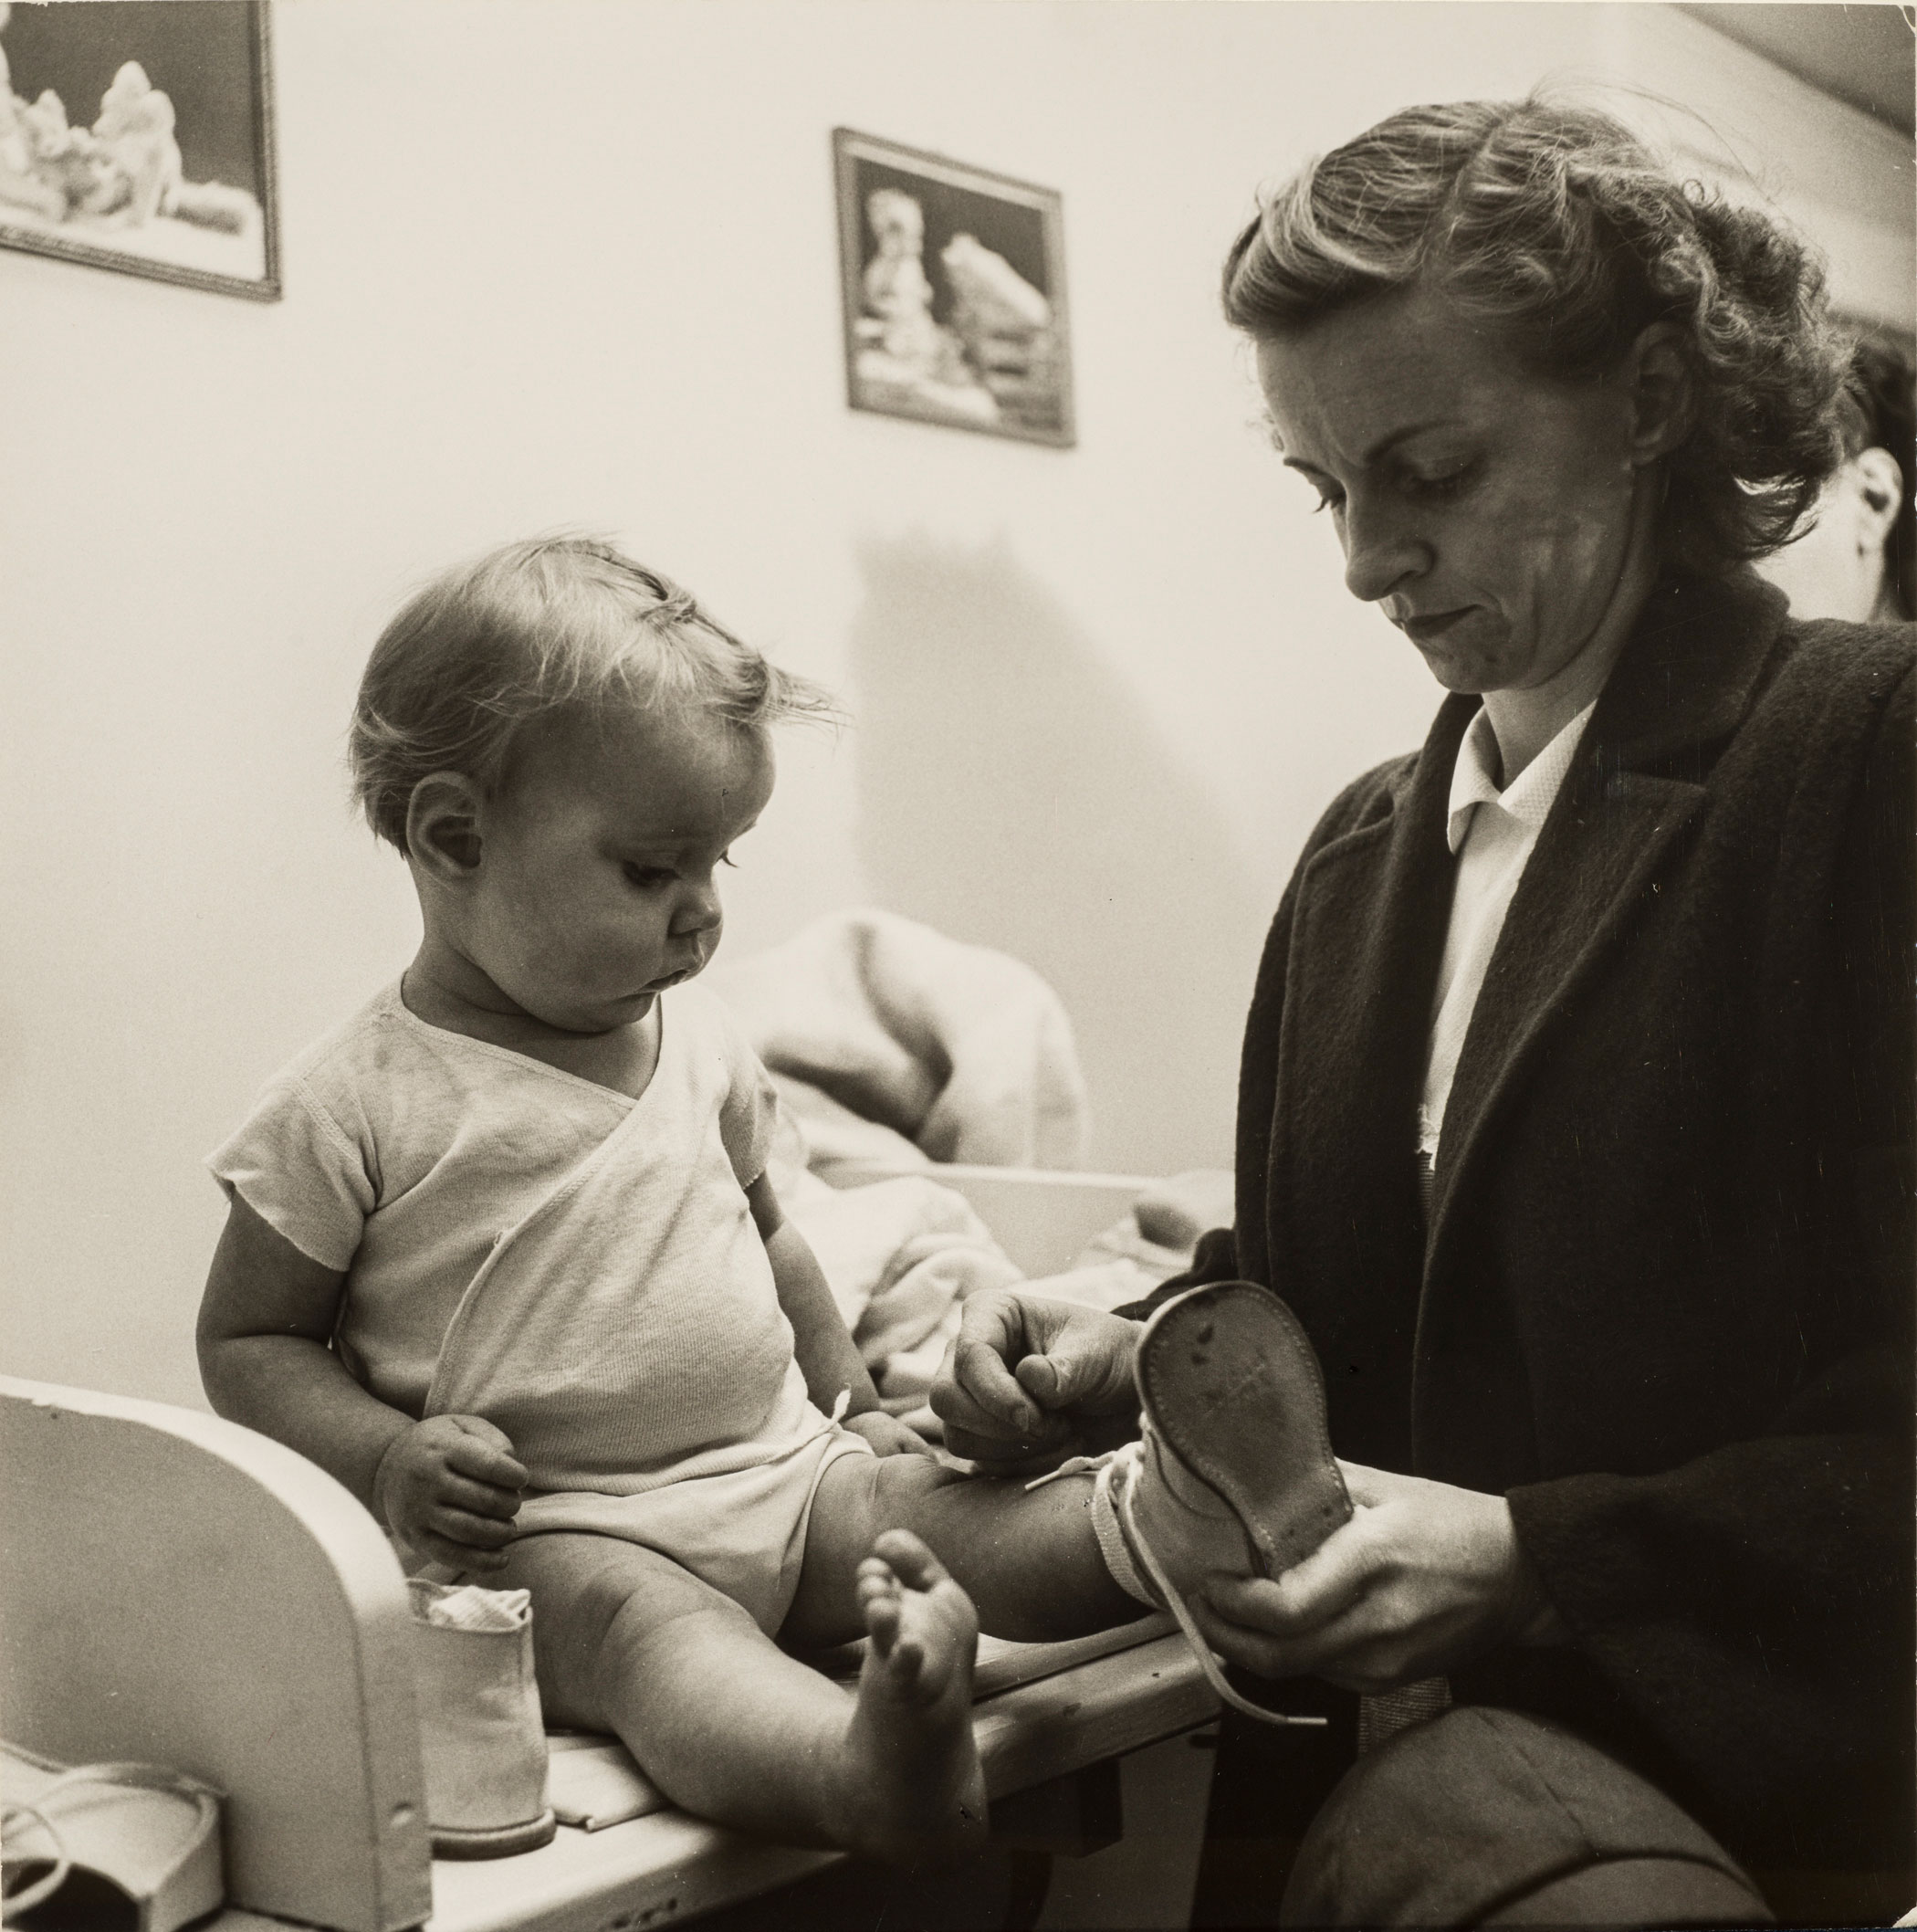 Esther Bubley,At the well-baby clinic, 1953; Gelatin silver print, 7 5/8 x 7 1/2 in.; Gift of Kenneth and Lori Polin and Family; © Standard Oil (New Jersey) Collection #76624; Photographic Archives, University of Louisville; Photograph by Lee Stalsworth